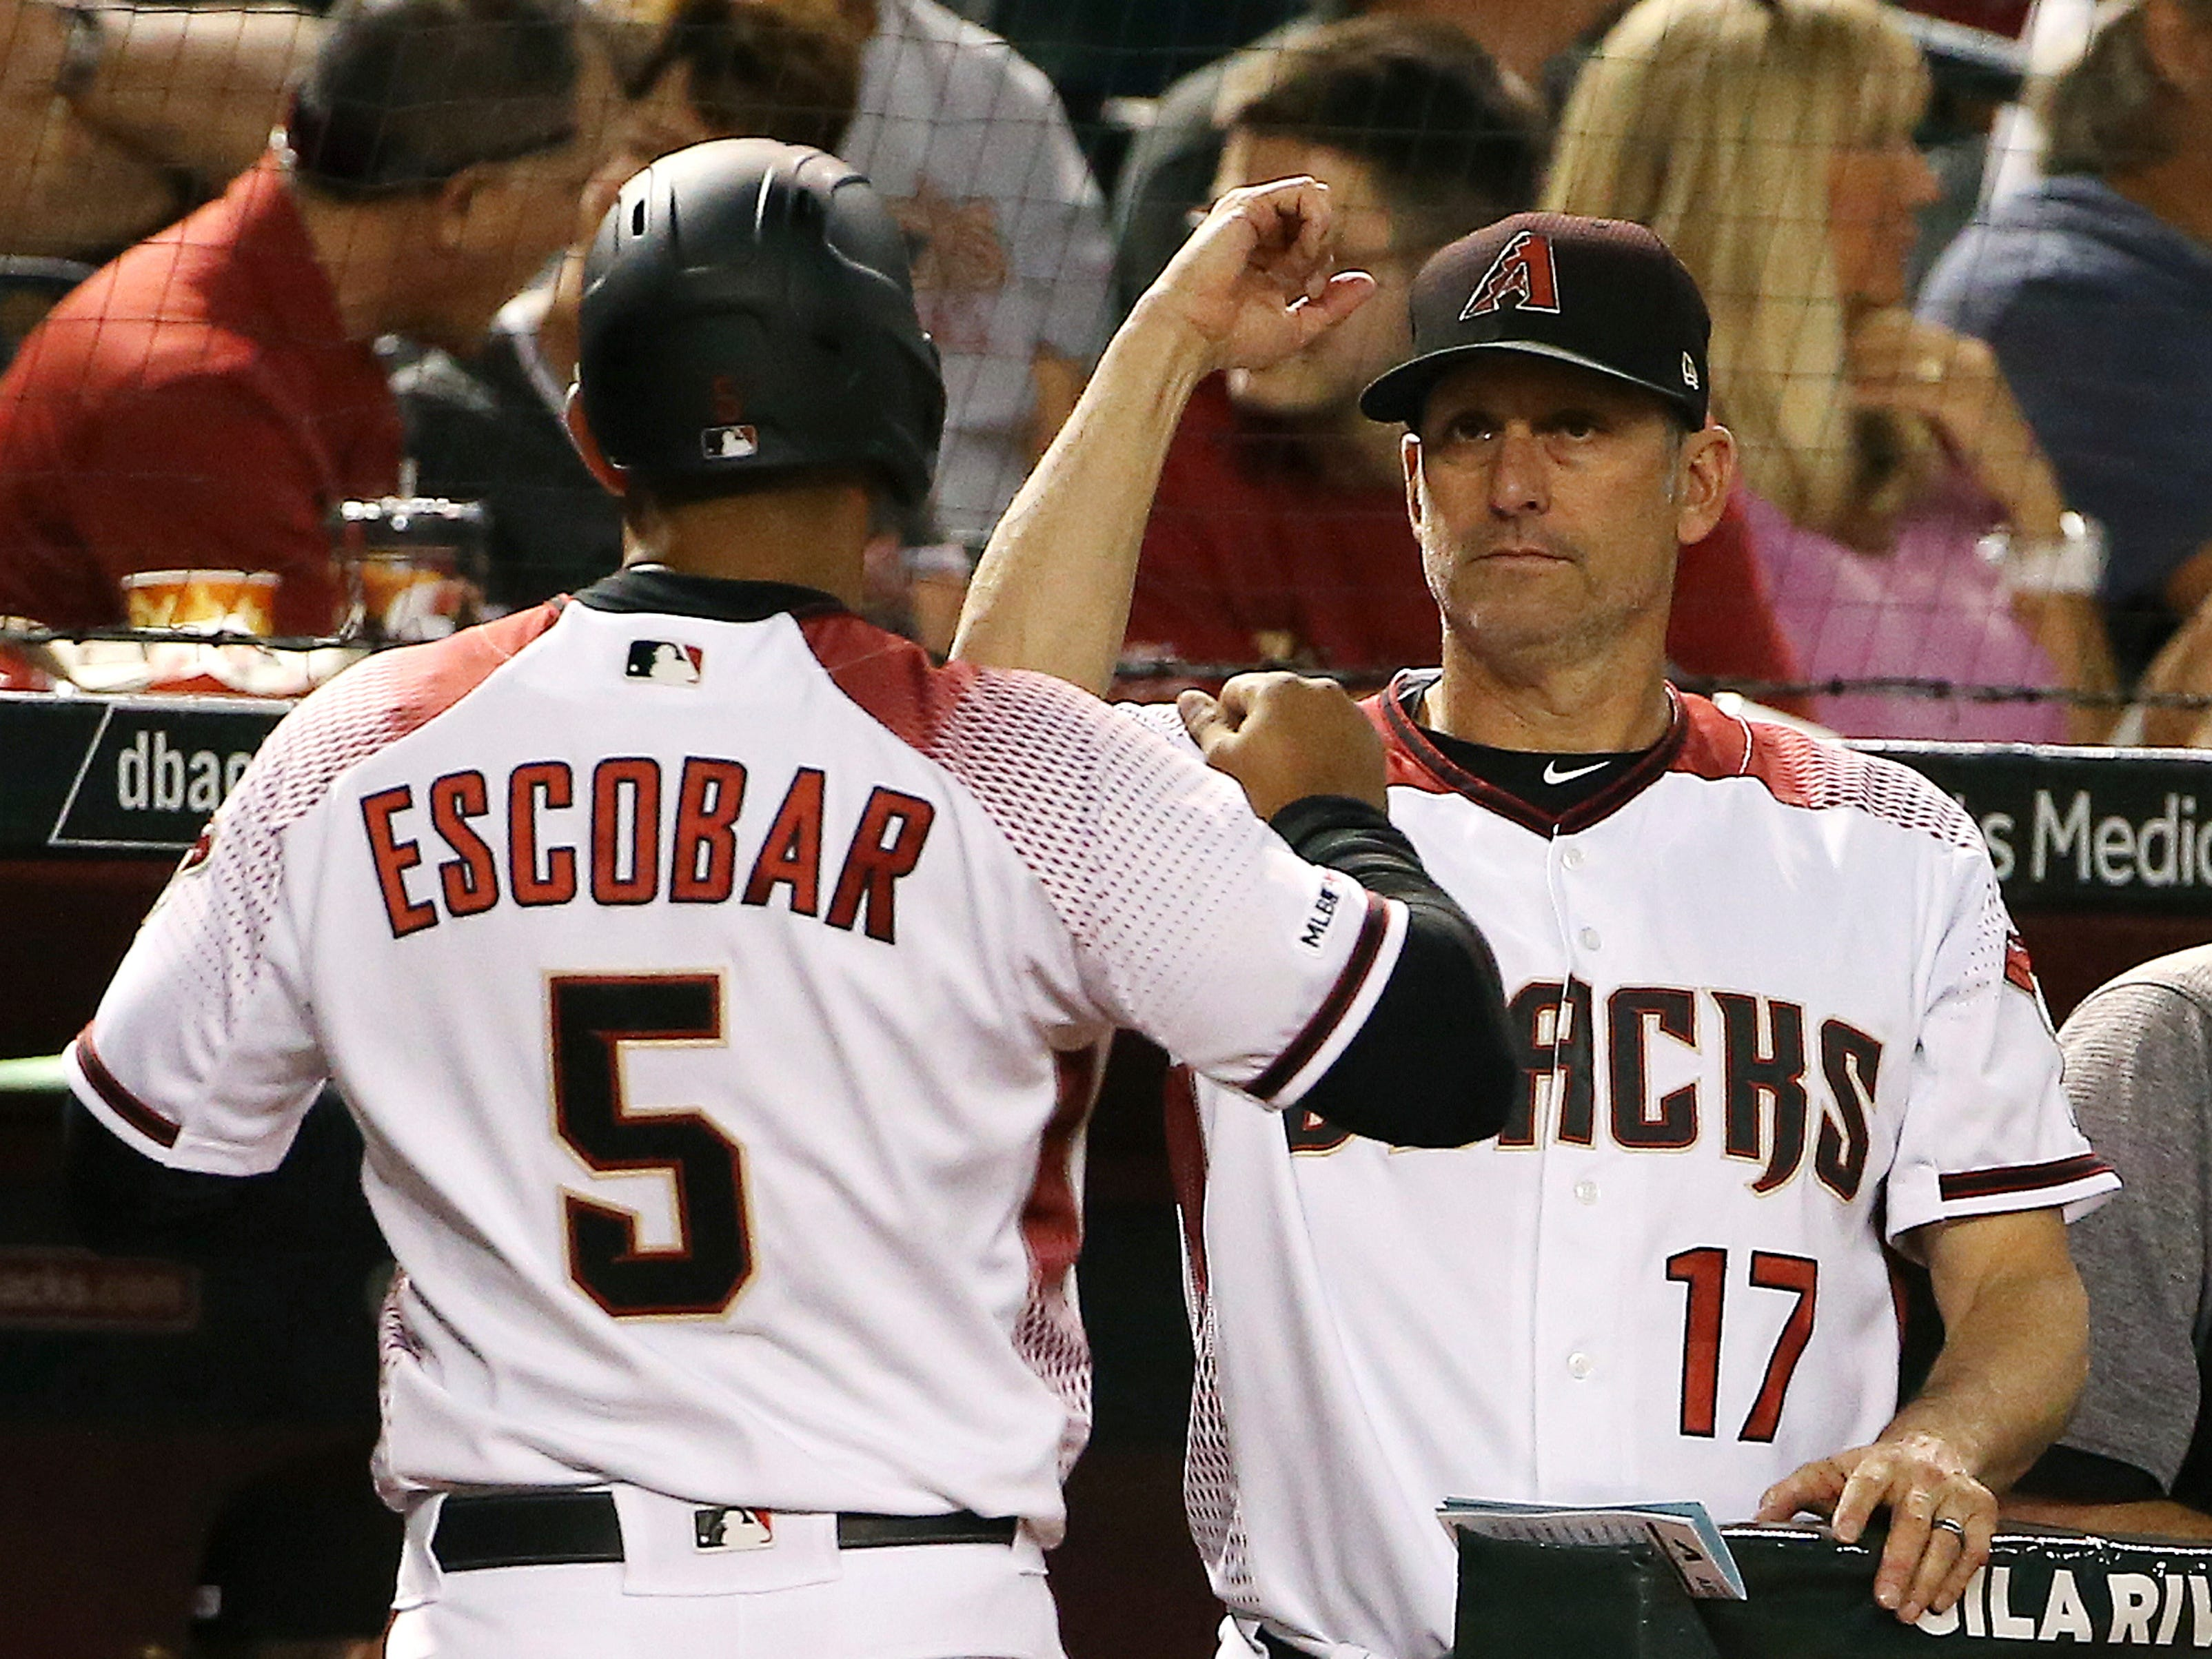 Arizona Diamondbacks manager Torey Lovullo (17) celebrates a run scored against the Pittsburgh Pirates by Eduardo Escobar (5) during the second inning of a baseball game Monday, May 13, 2019, in Phoenix.